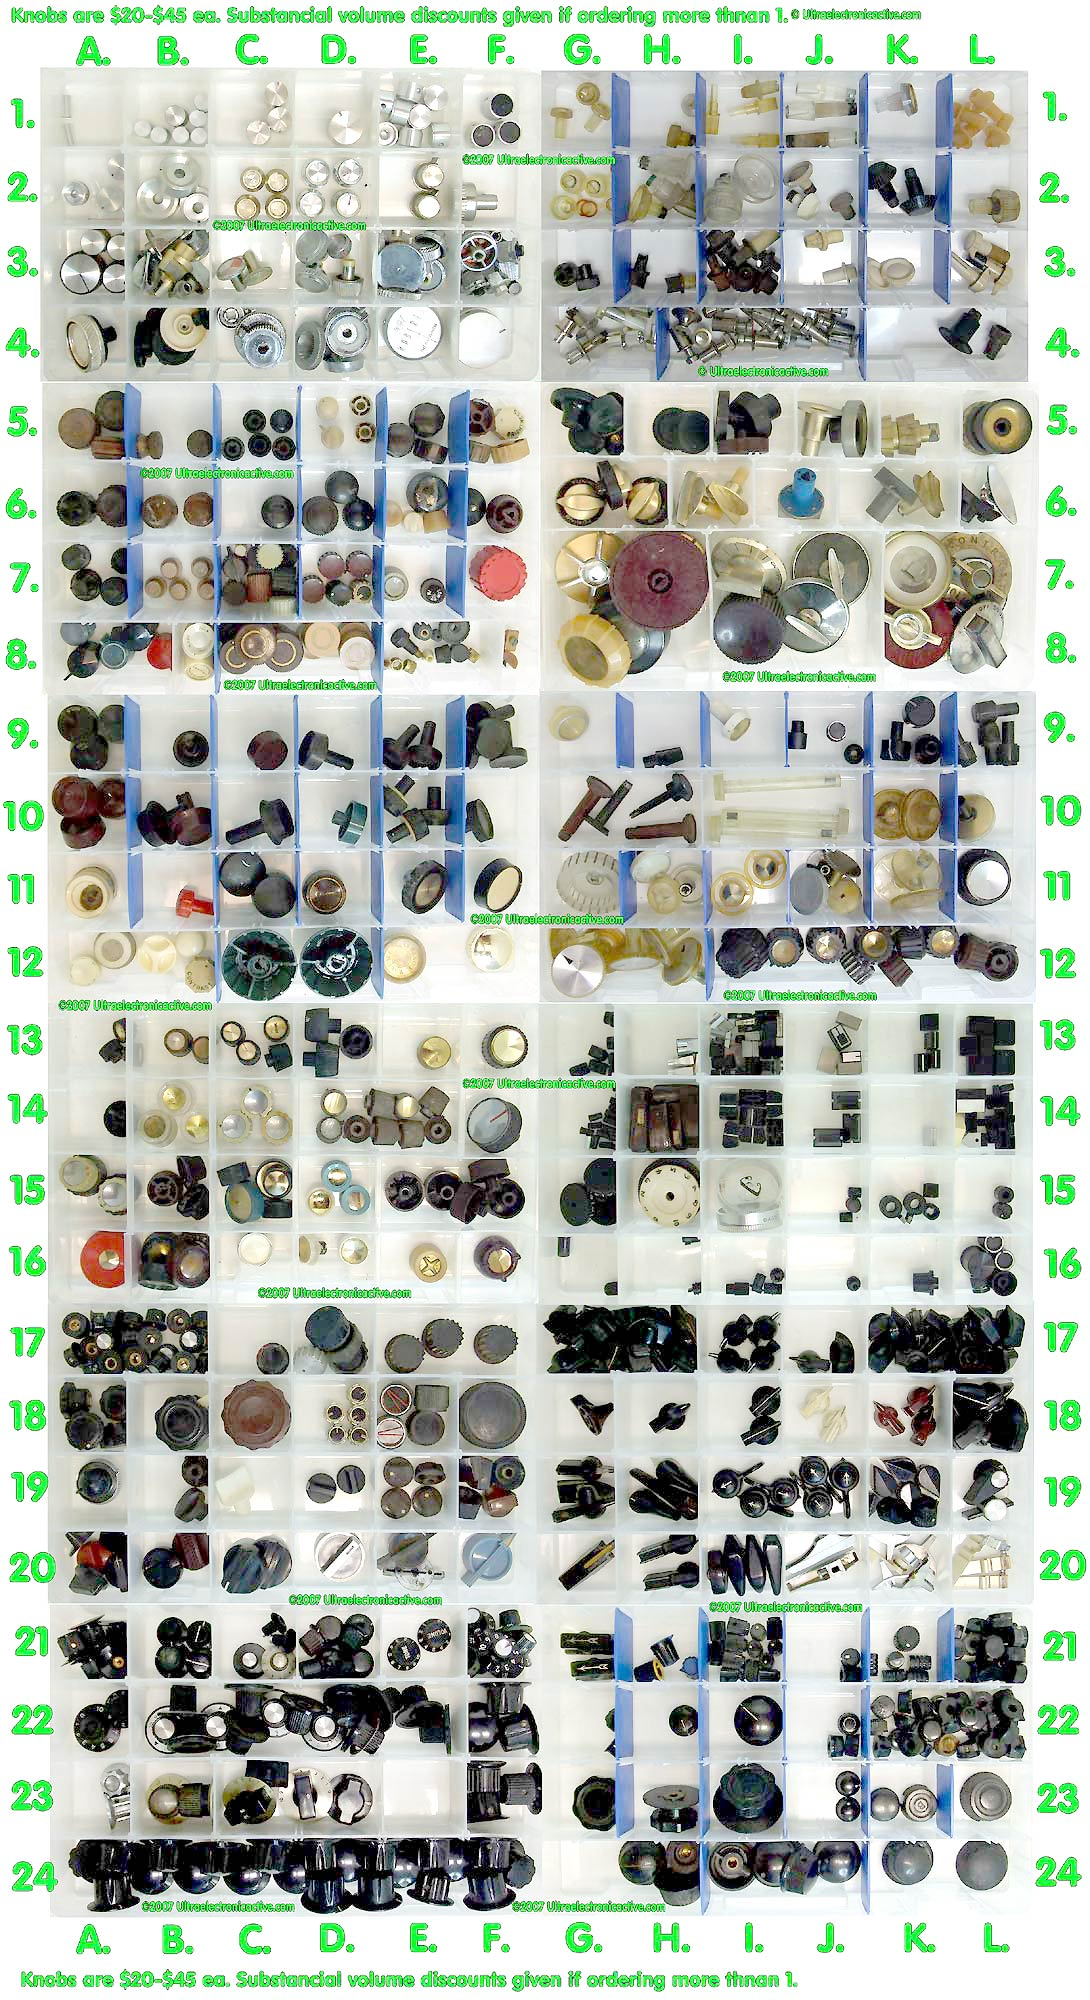 More than 300 types of Vintage Audio Equipment Knobs are available here!